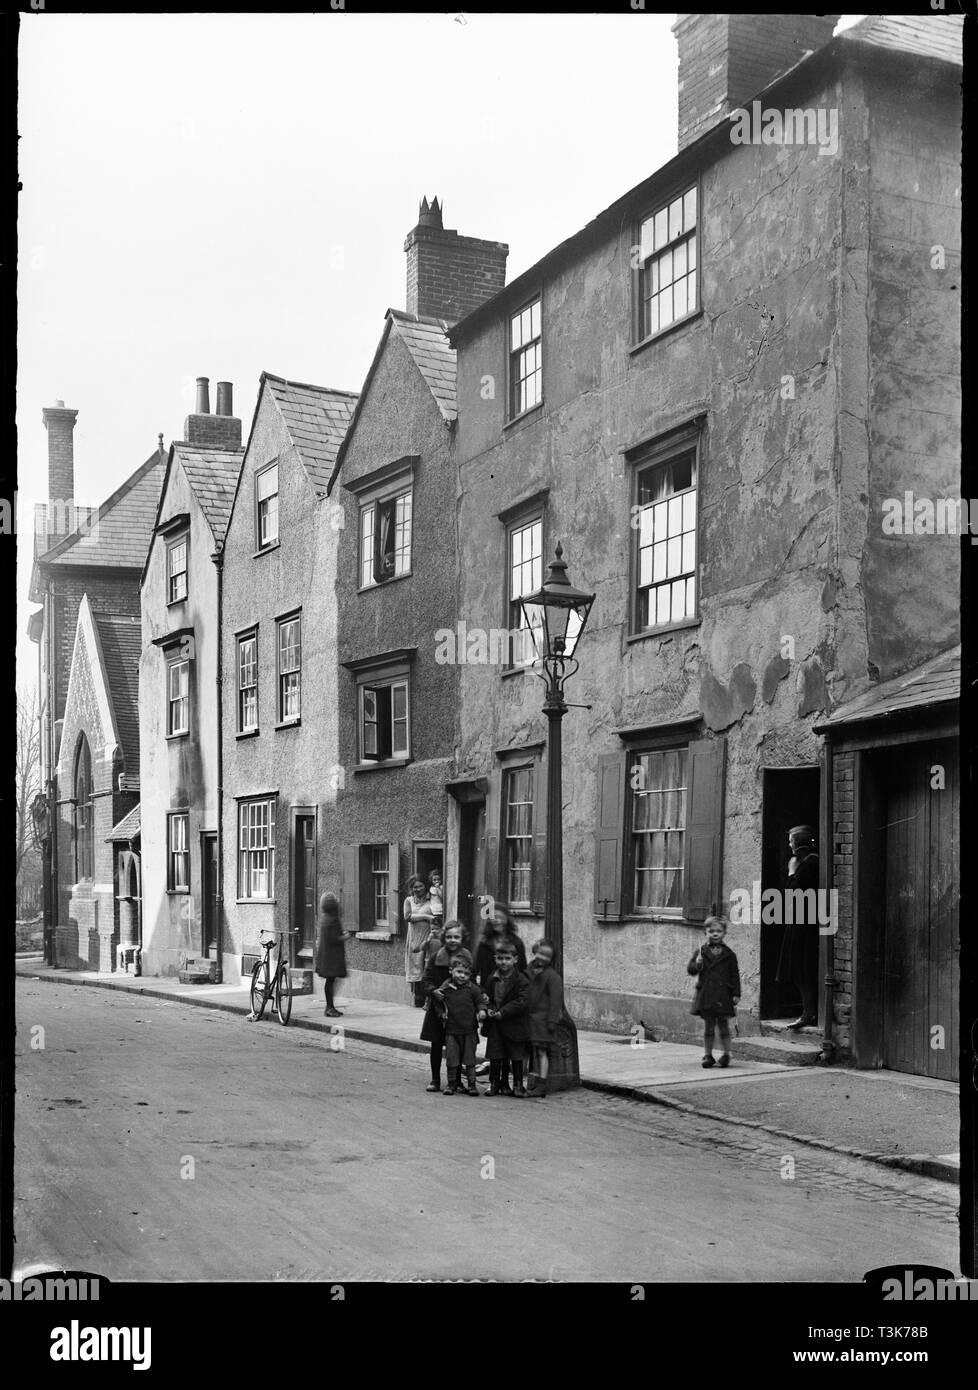 Beef Lane, Oxford, Oxfordshire, 1928. A view of 17th and 18th century houses on the north side of Beef Lane, showing the fronts of numbers 4-8 from the south-west, with children in the foreground standing beside a lamp post. This row of houses has subsequently been demolished. - Stock Image